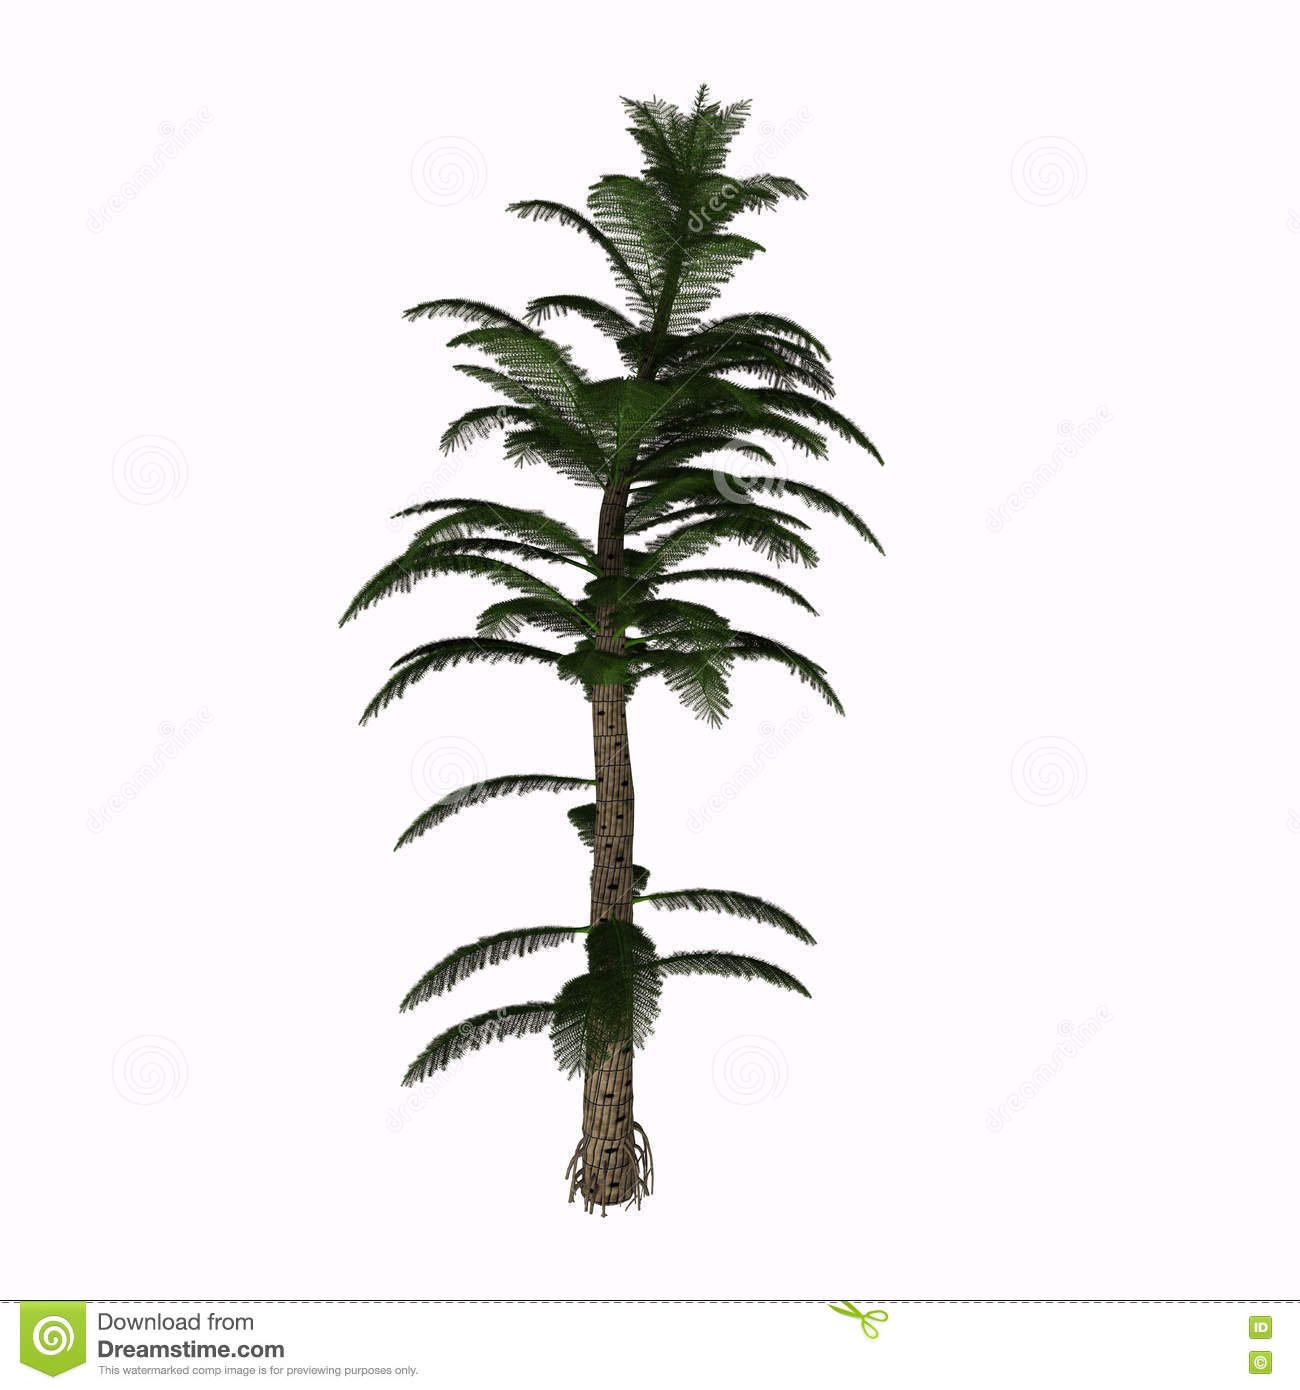 Calamitea Striata Tree Stock Illustration Illustration Of Green